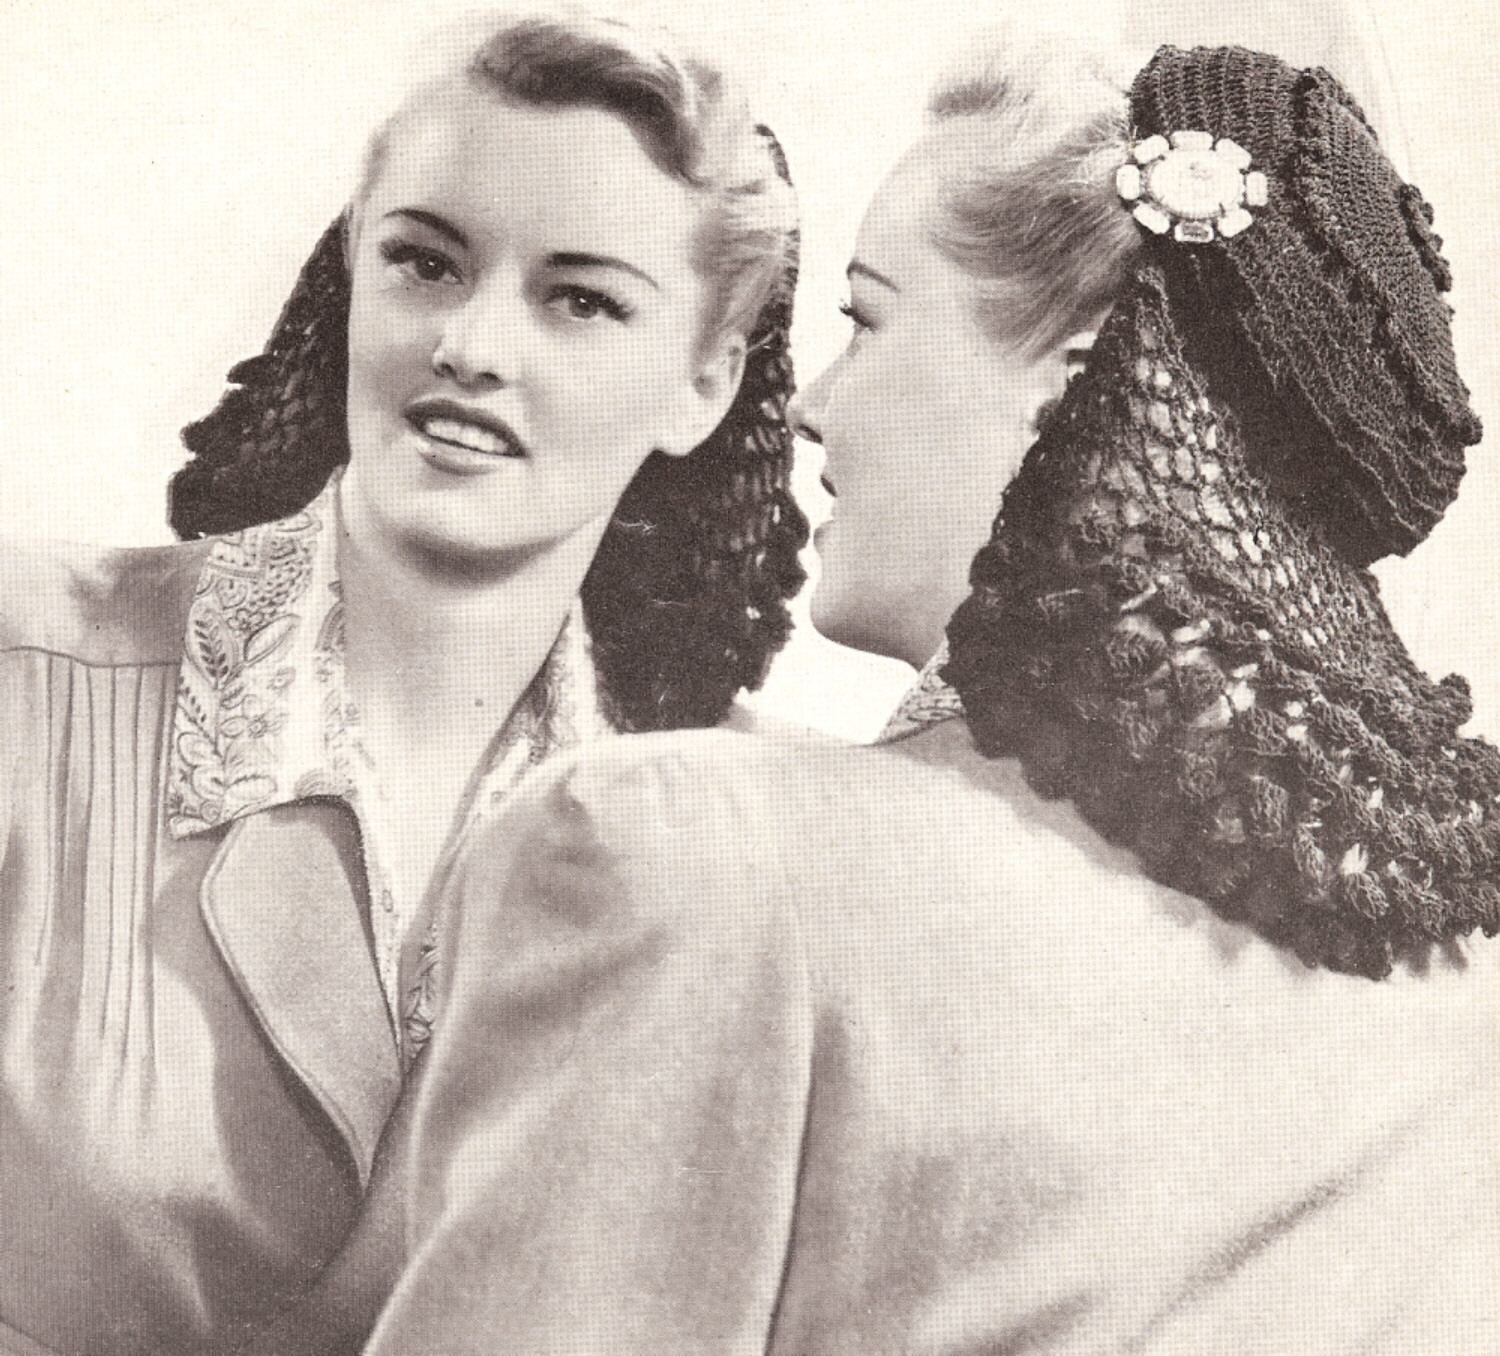 Crochet Hair Net Snood Pattern : Vintage Crochet Snood Hat Cap 1940s hair net pattern